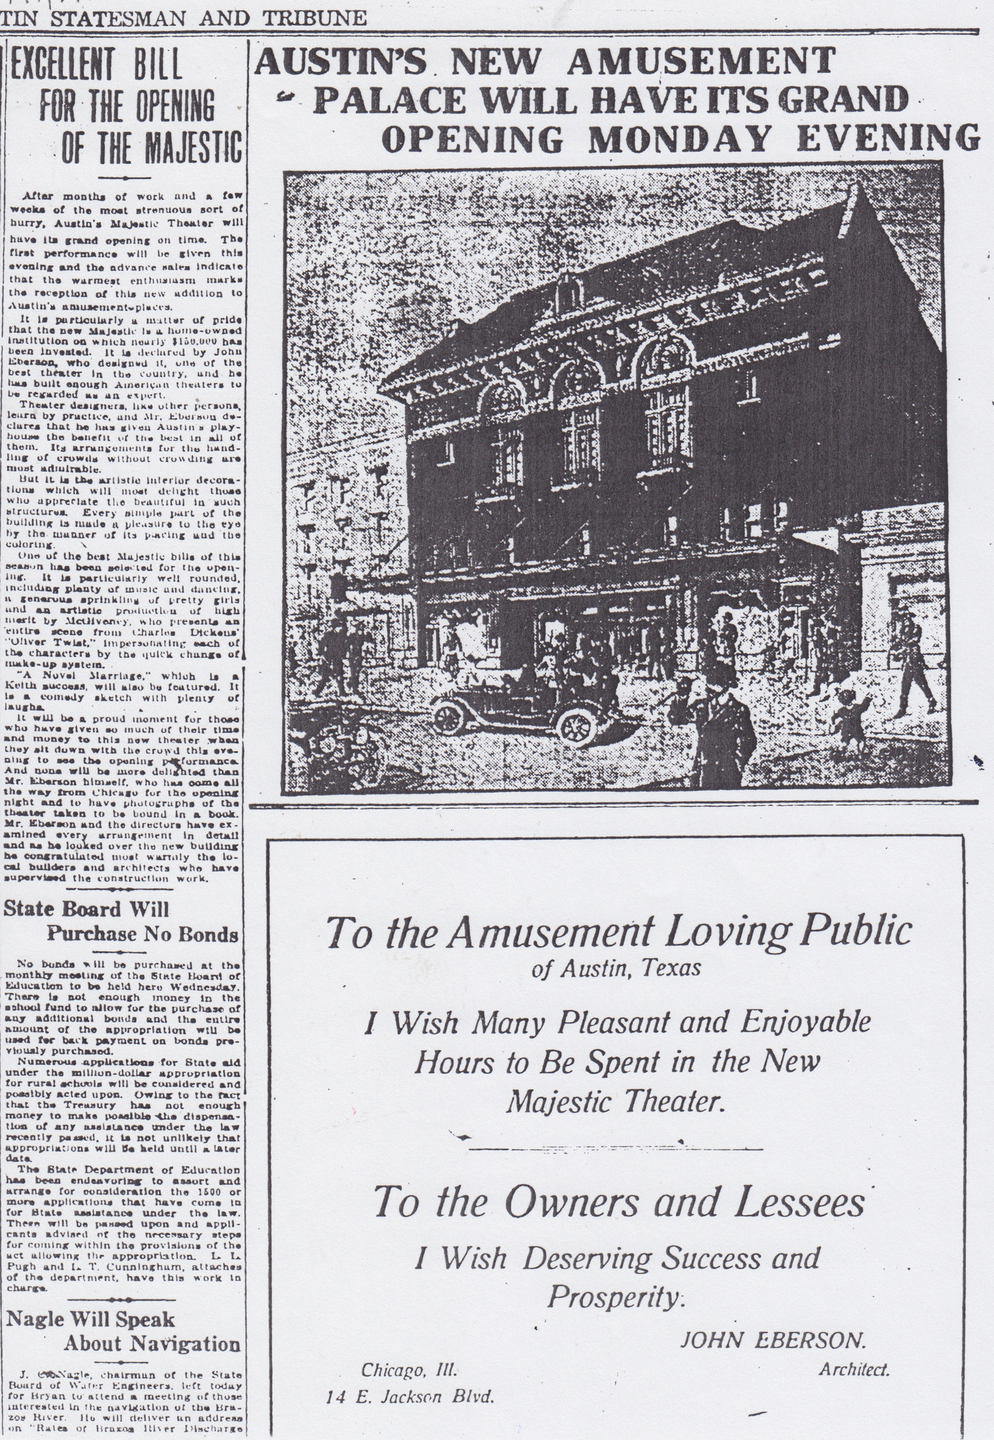 1915 Austin Statesman and Tribune article on Opening of the Majestic – Photo courtesy of the Austin Theatre Alliance